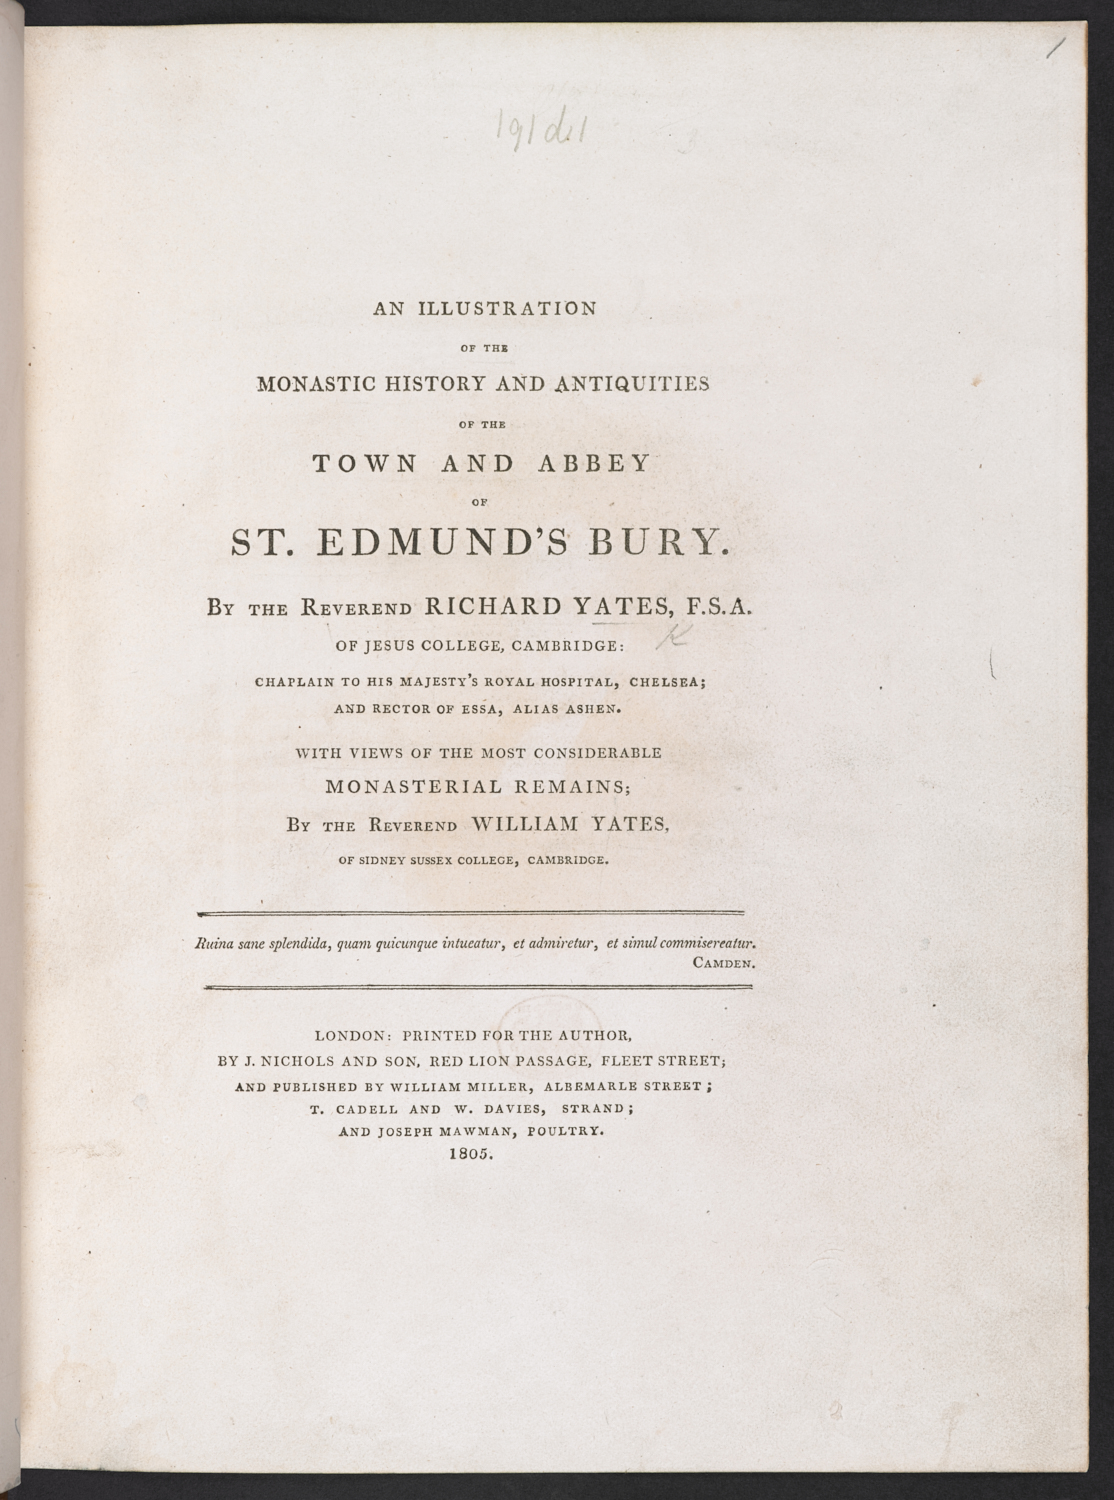 Title Page of An Illustration of the Monastic History ... of ... St. Edmund's Bury by Richard Yates